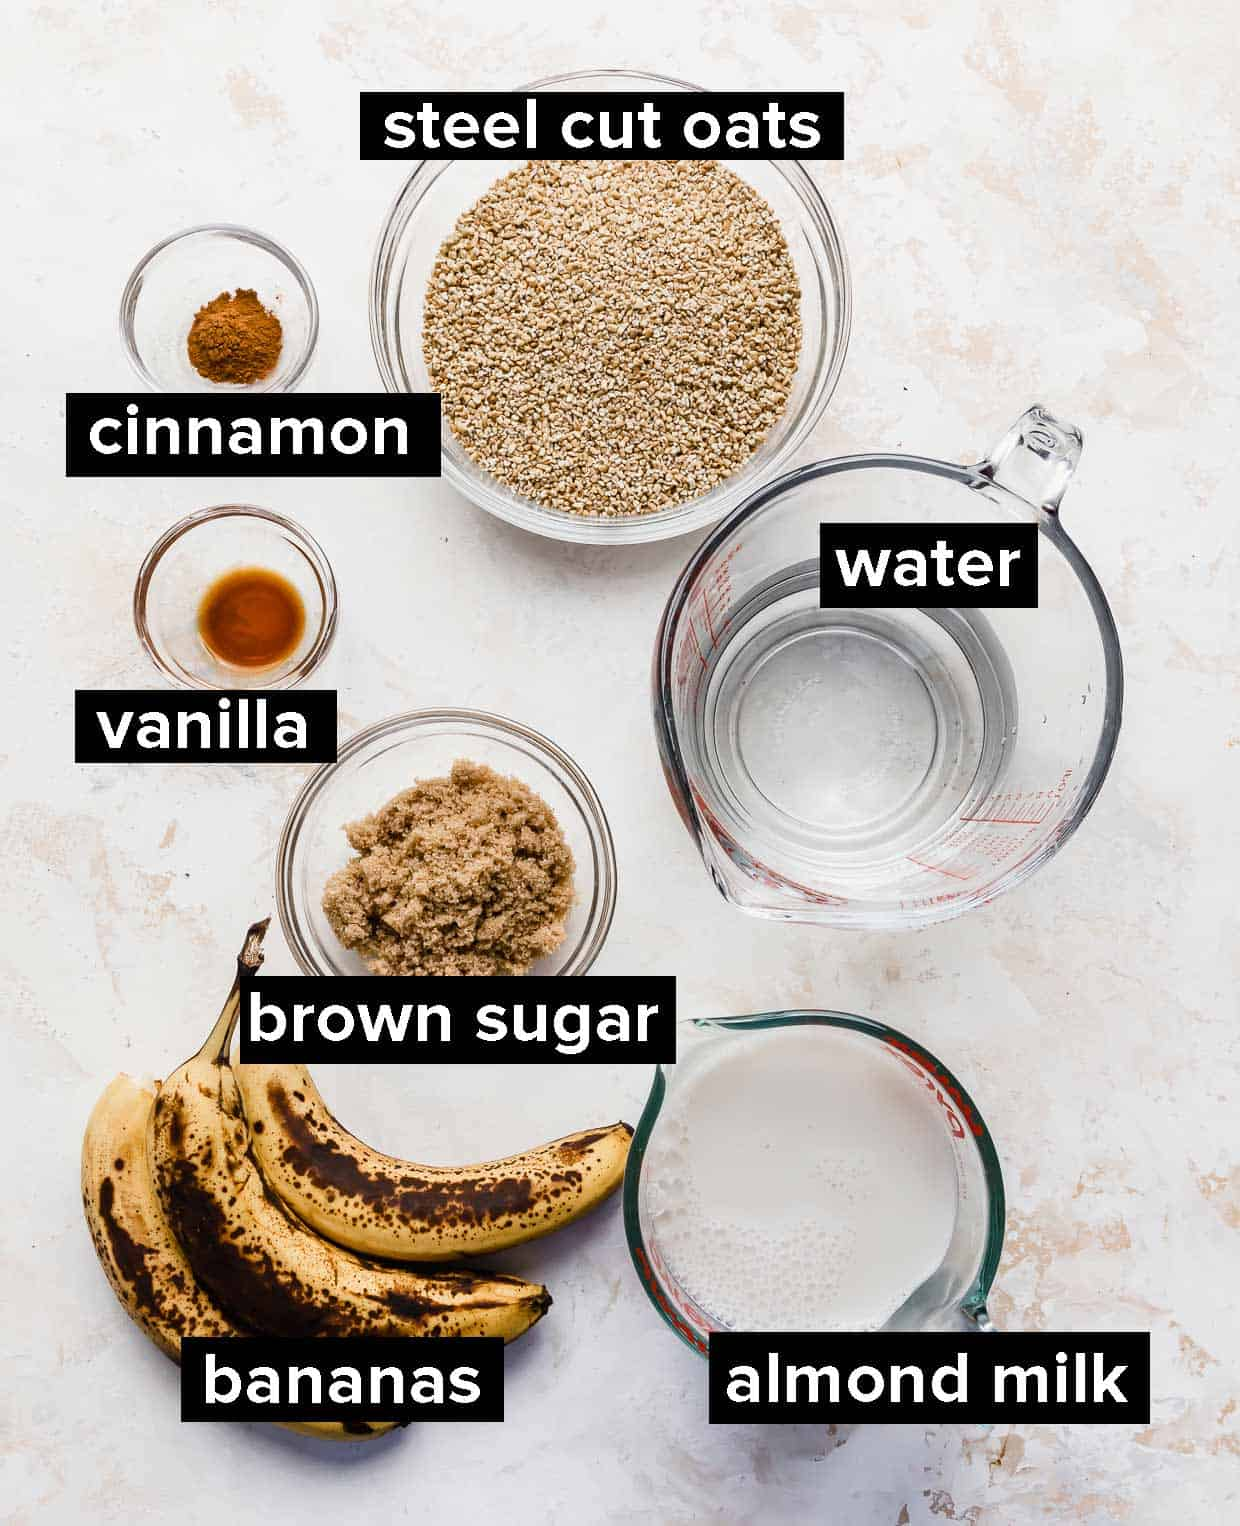 Ingredients used to make banana steel cut oats on a white background.